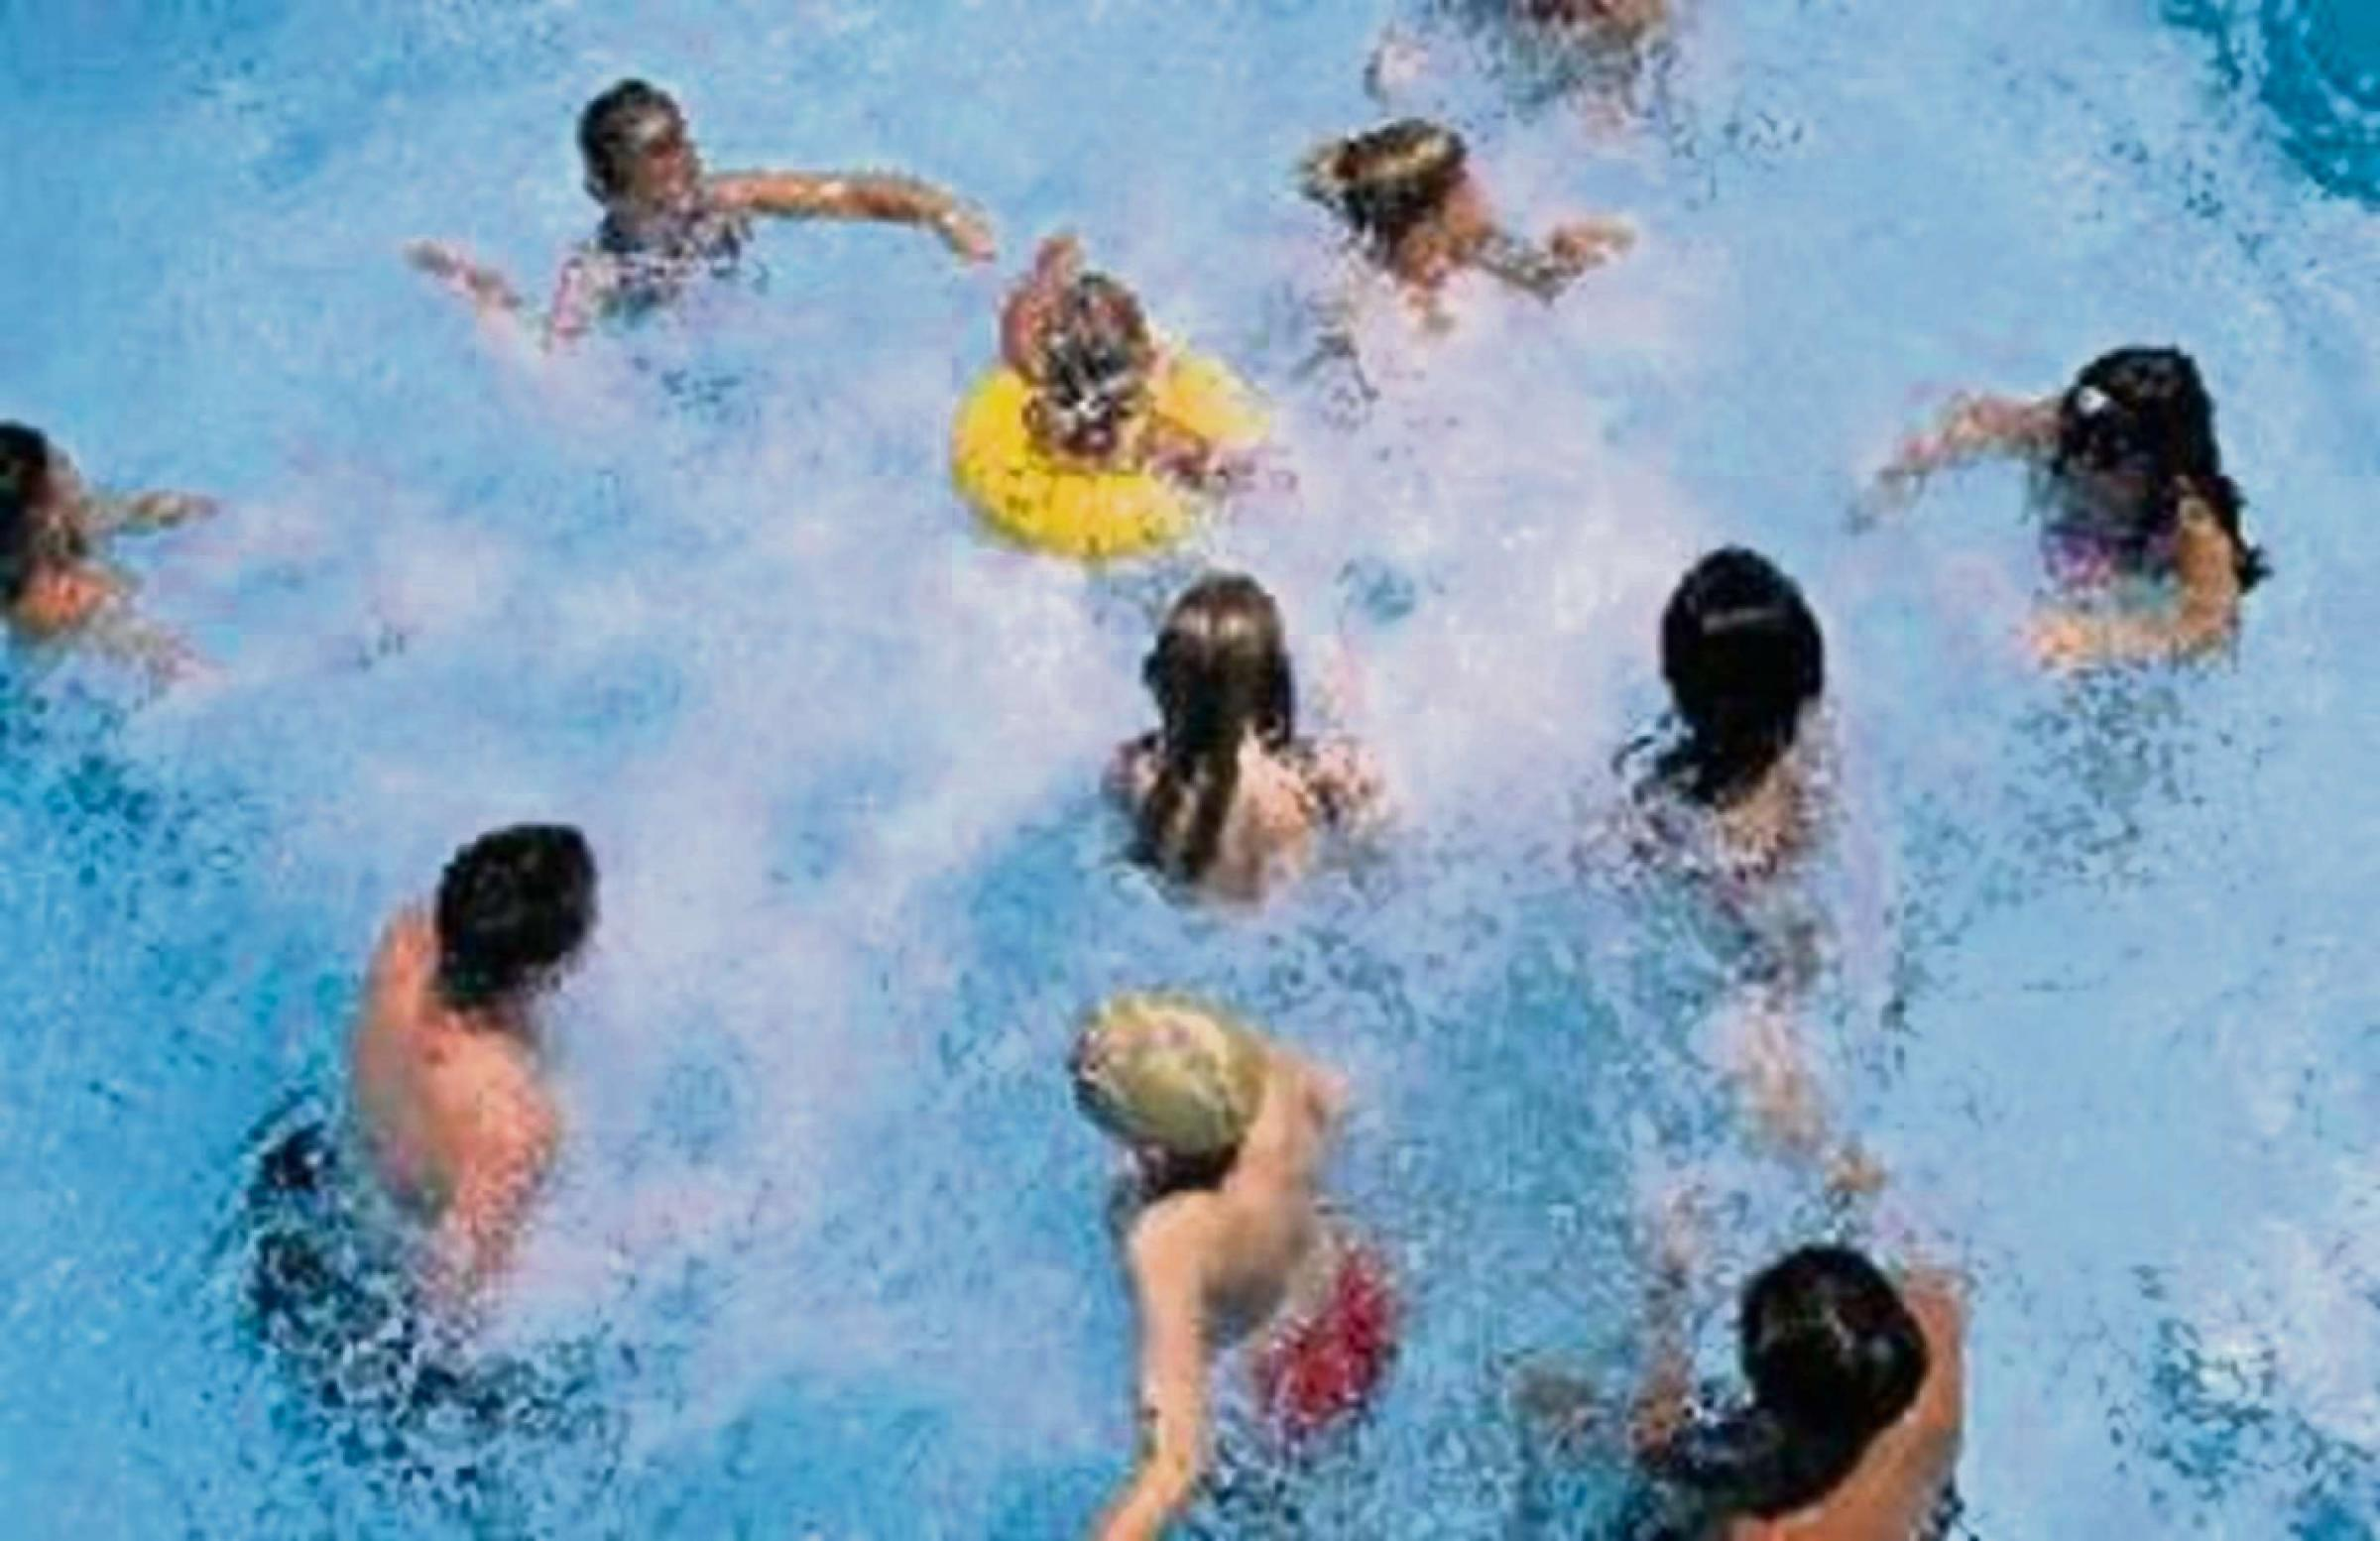 Free swimming classes plan for East Lancashire